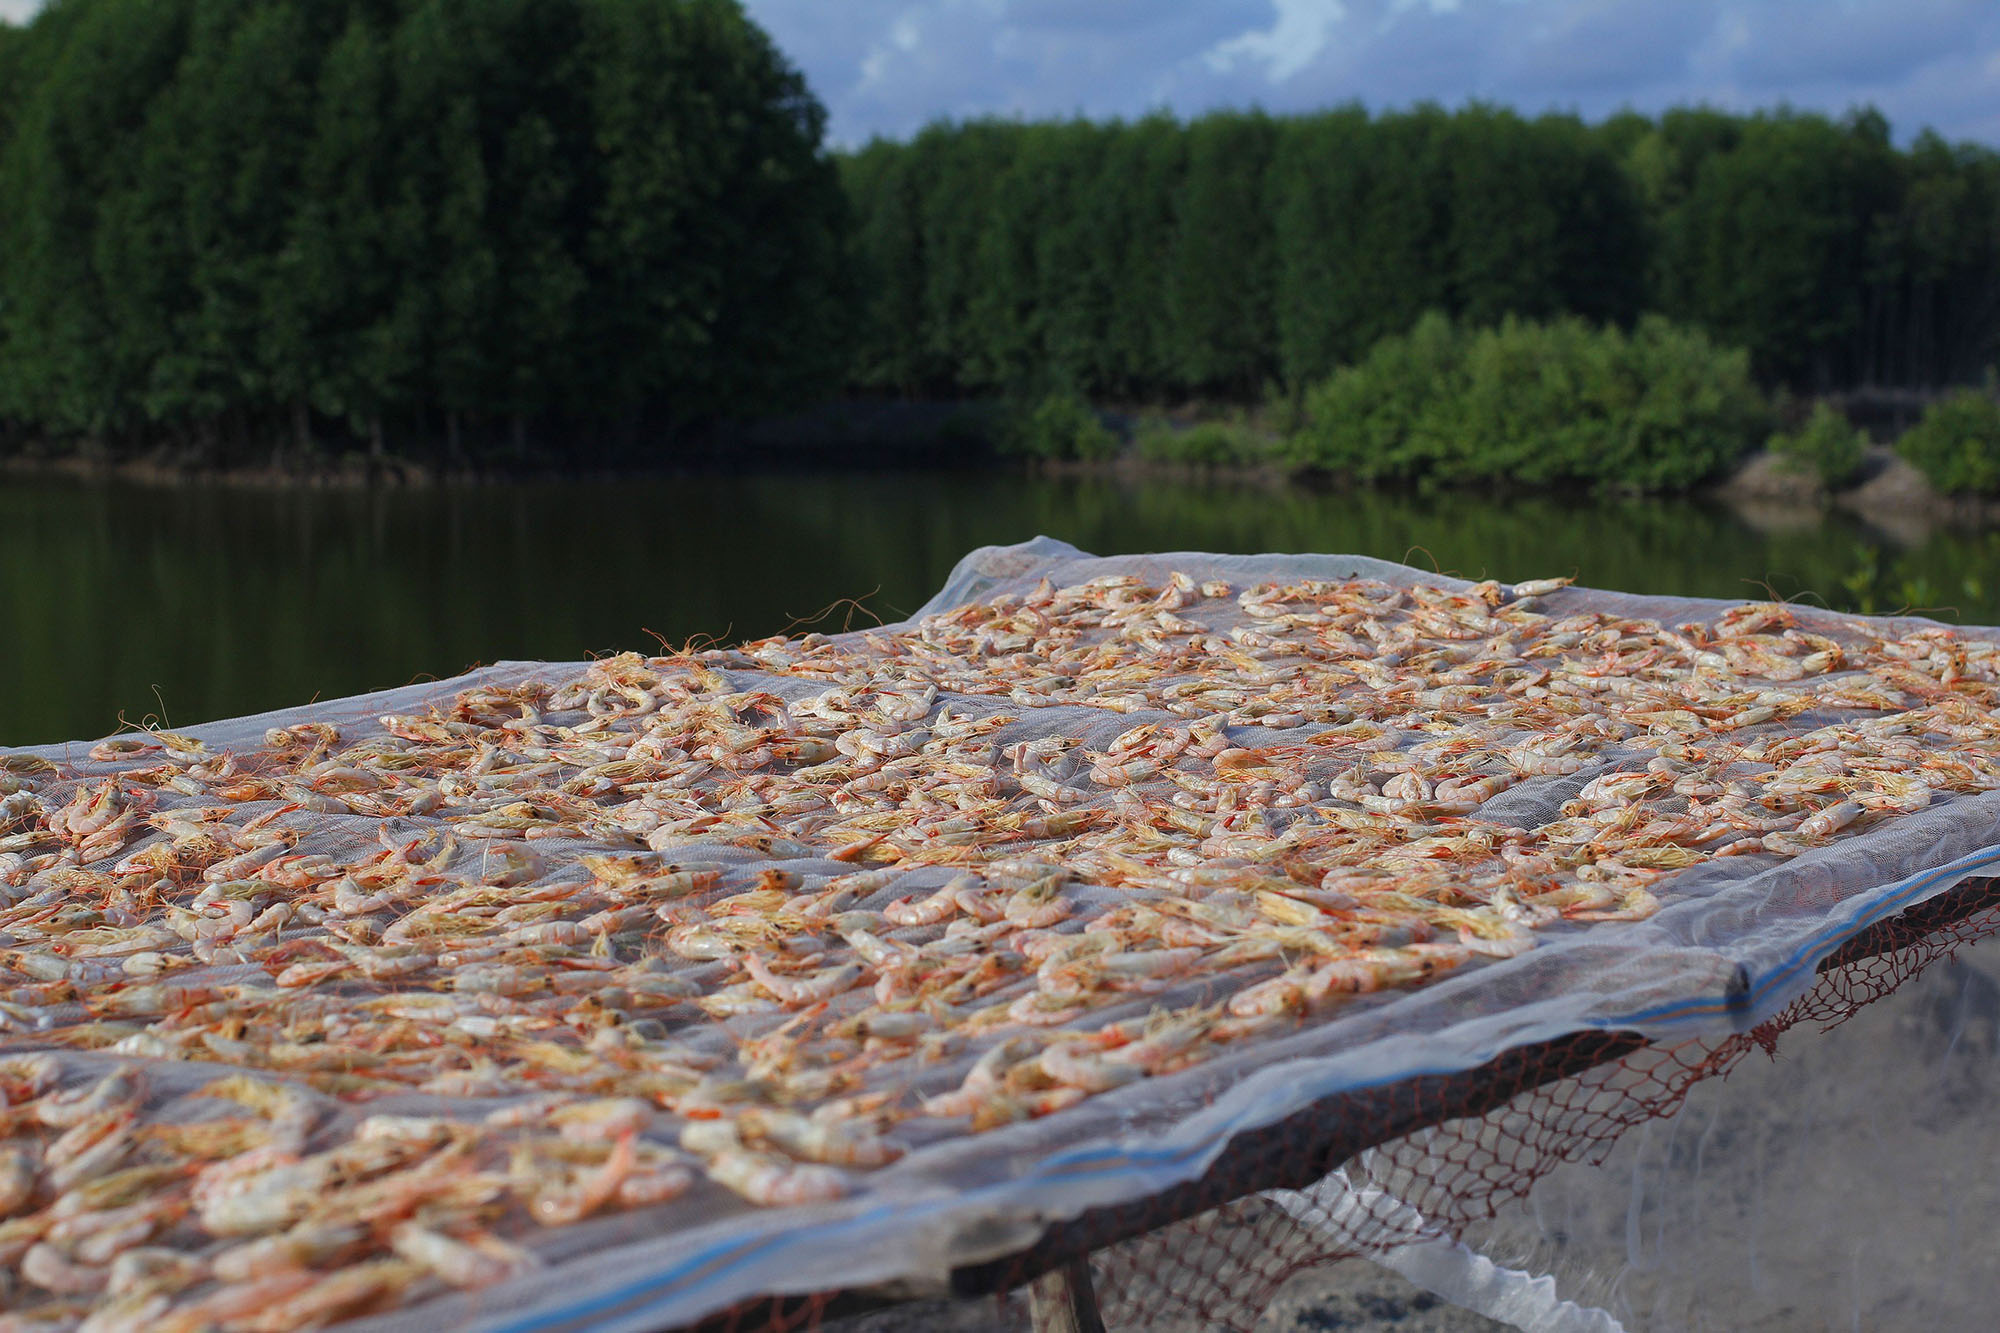 Sustainable Shrimp Farming in Vietnam's Mangrove Forests